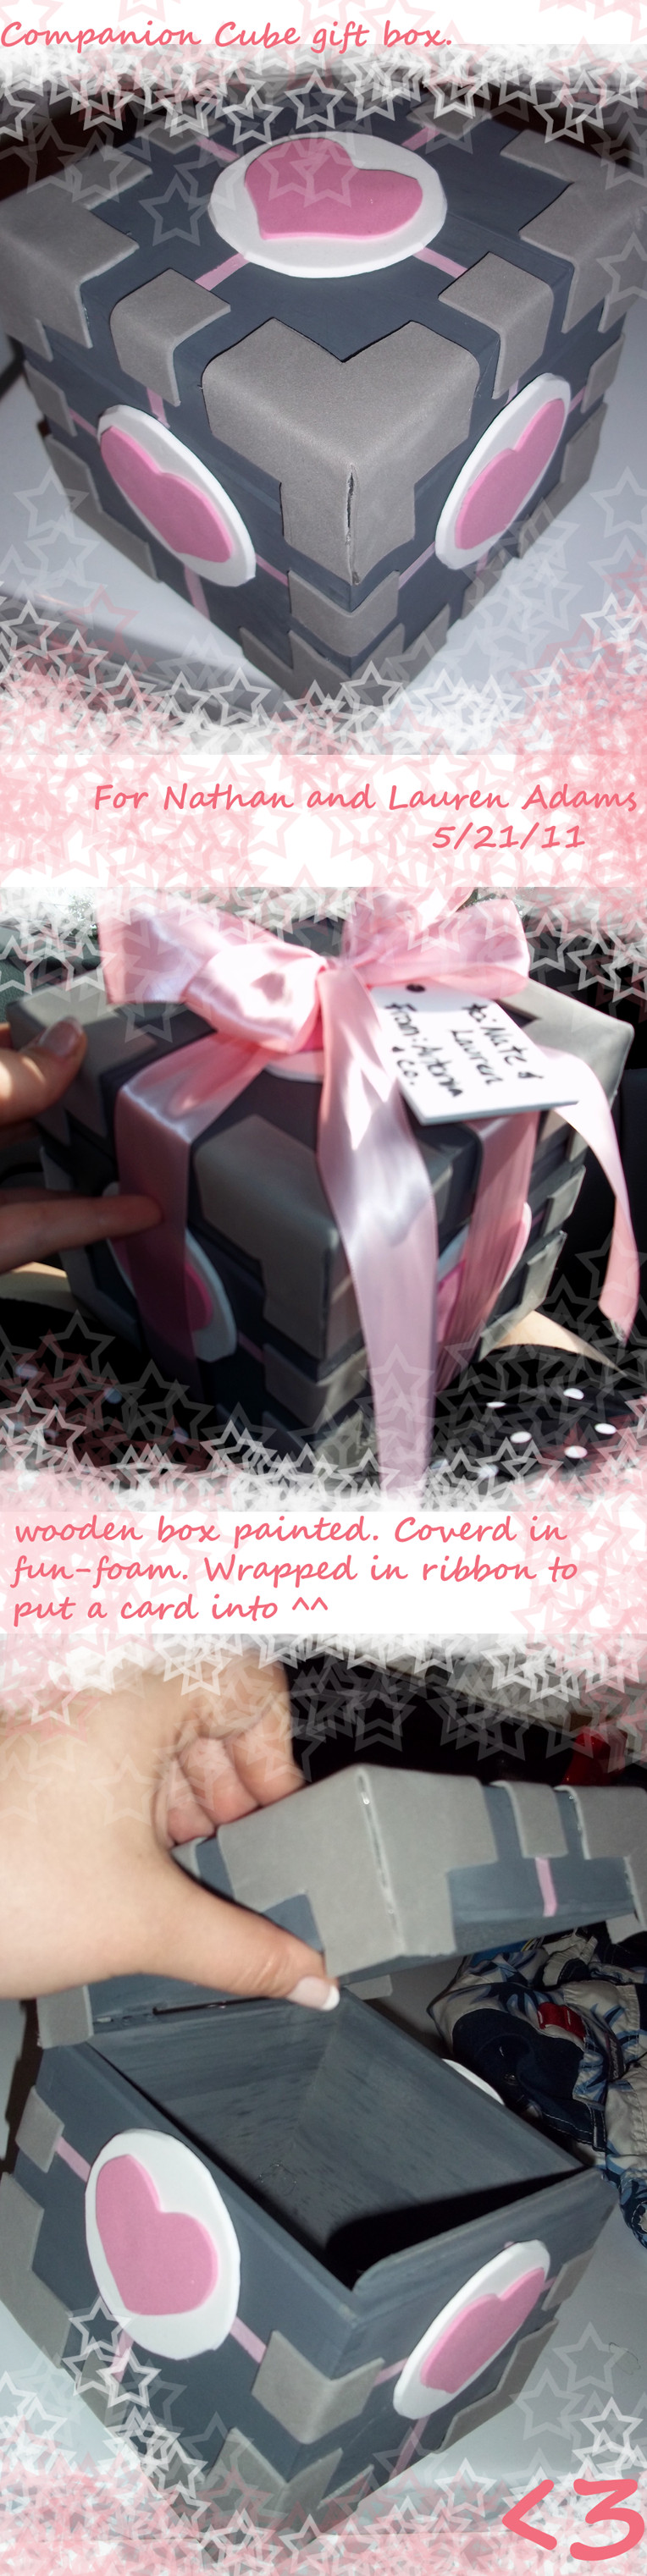 companion cube gift box. by AceroTiburon